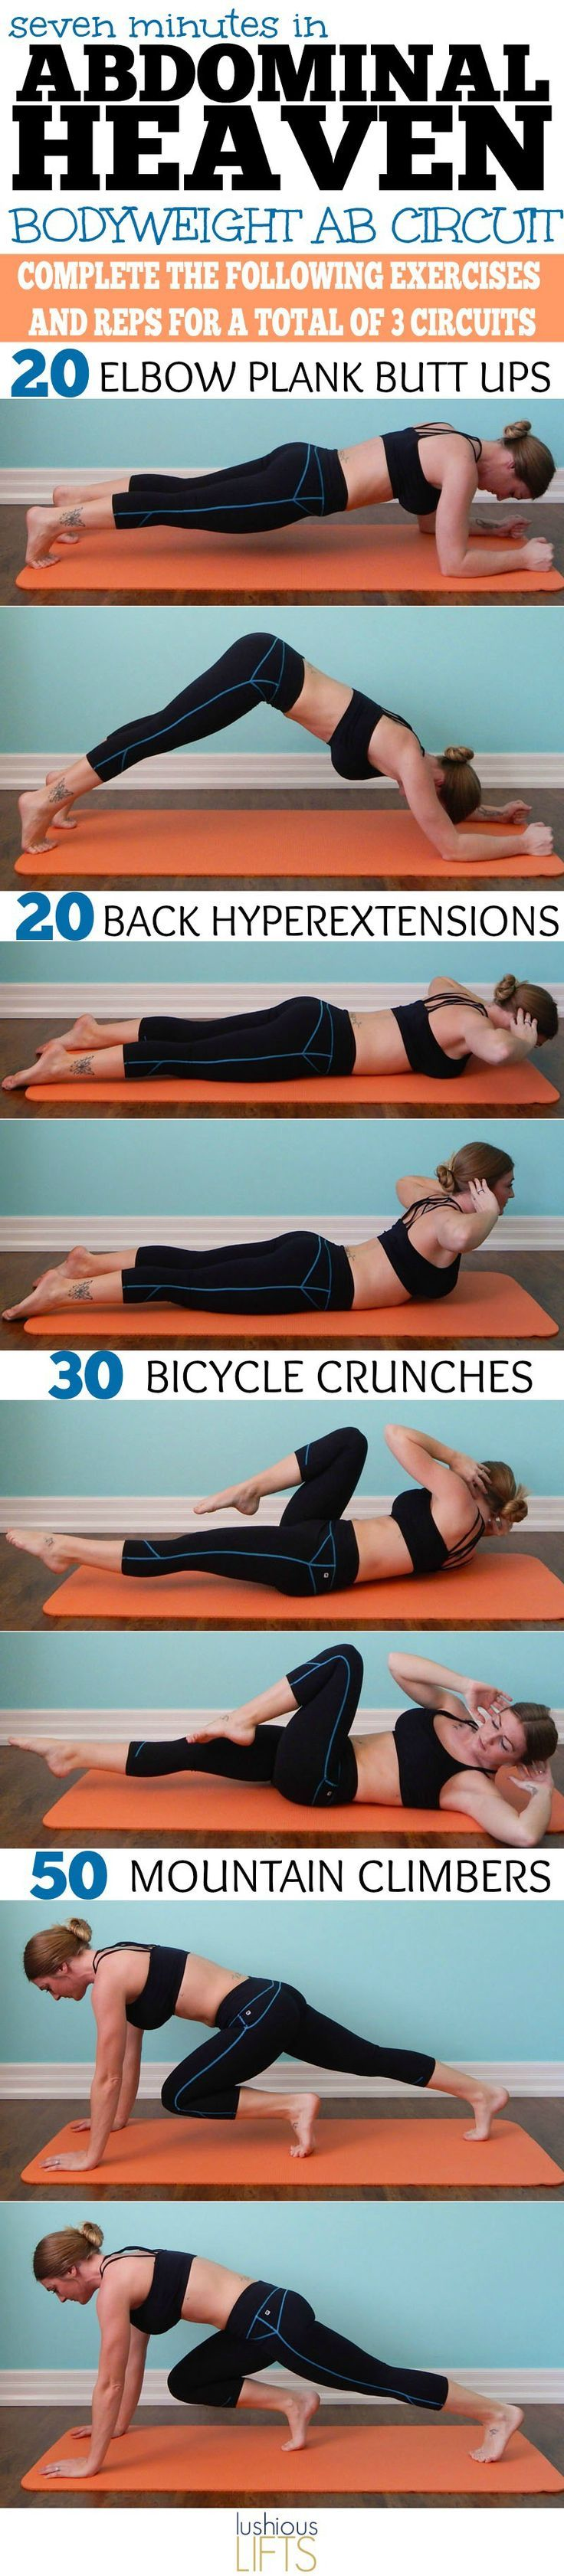 seven-minutes-in-abdominal-heaven-lushious-lifts-abdominal-circuit-workout